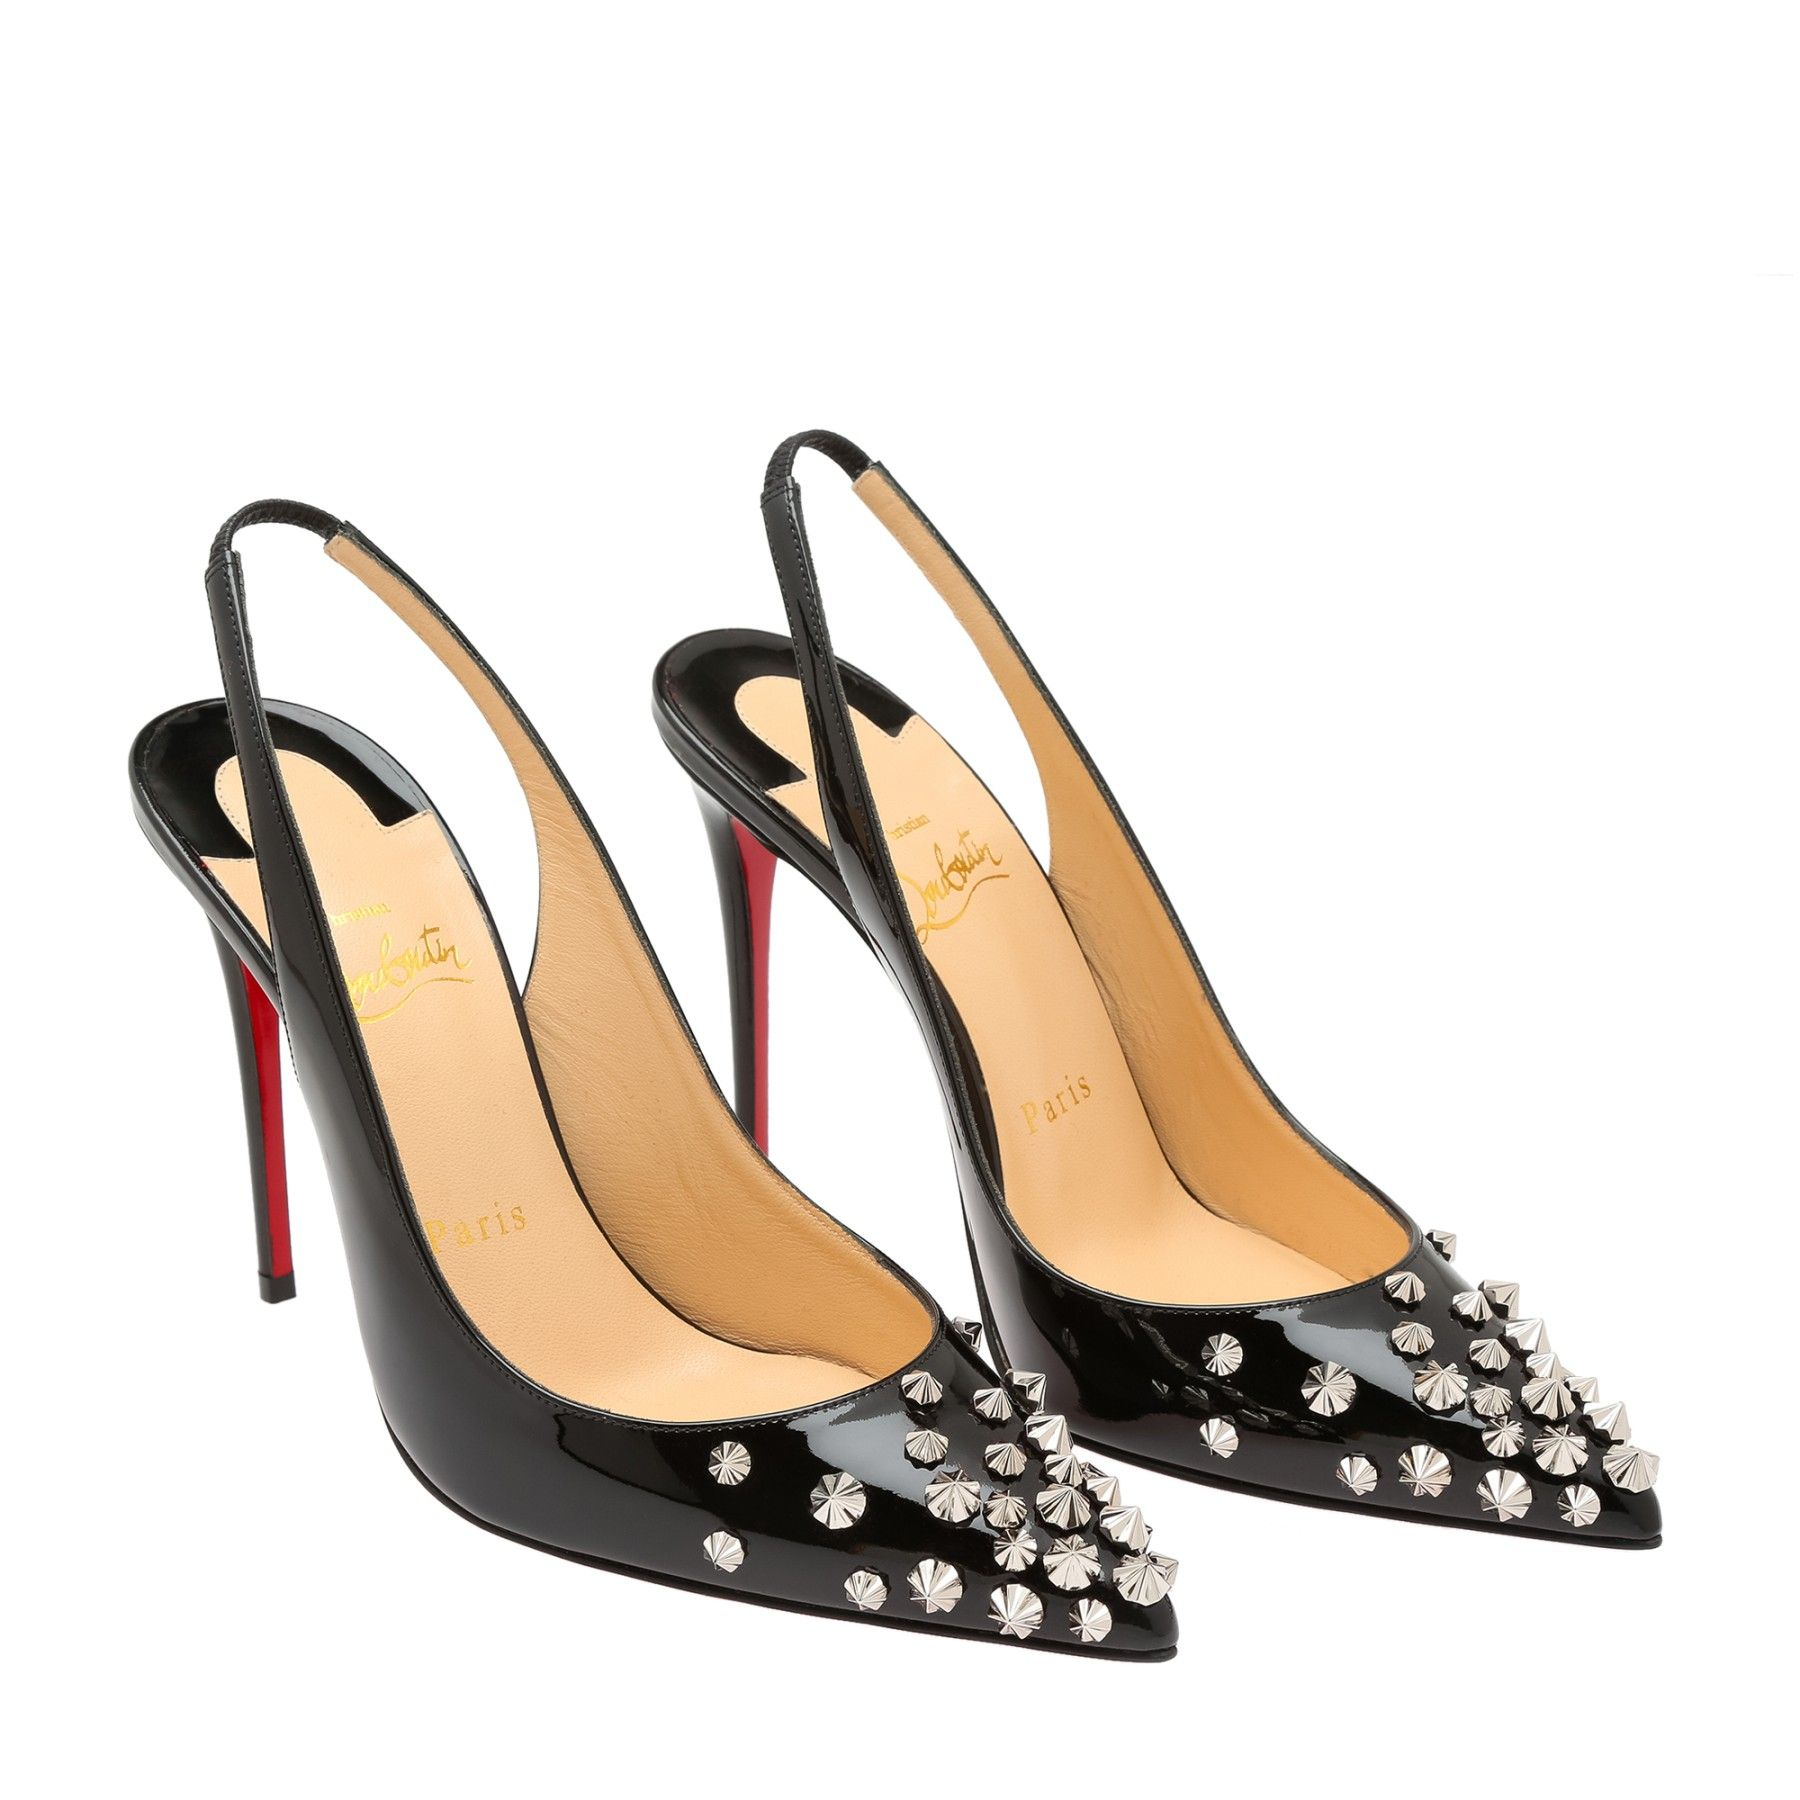 633c380d5bf Drama Sling 100 pumps Women Black. Find this Pin and more on shoes  Christian Louboutin ...